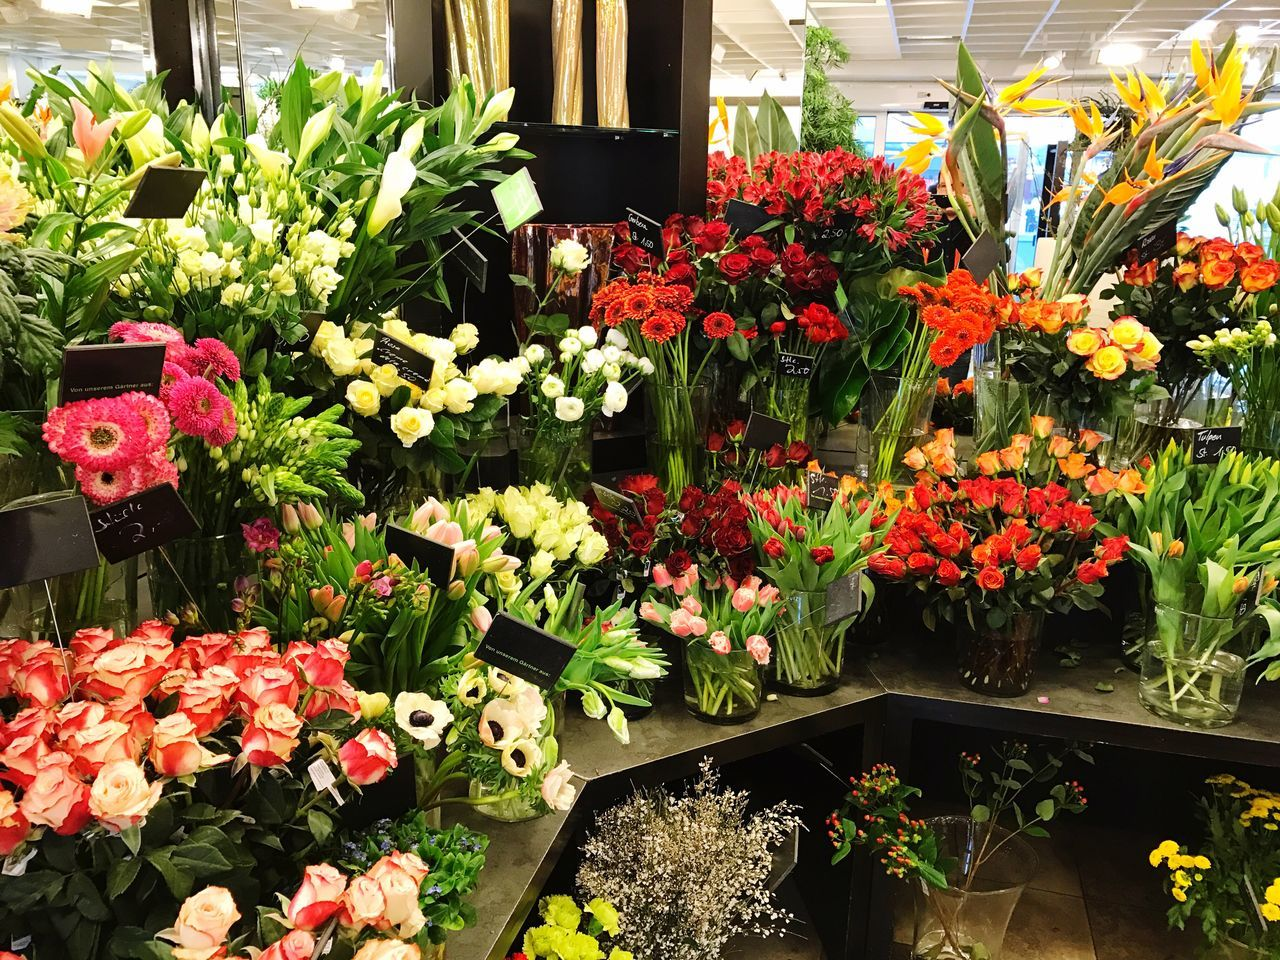 Flower Freshness Nature Beauty In Nature Botany Petal Multi Colored Flower Head Tulip Blooming Flower Shop Shop Store